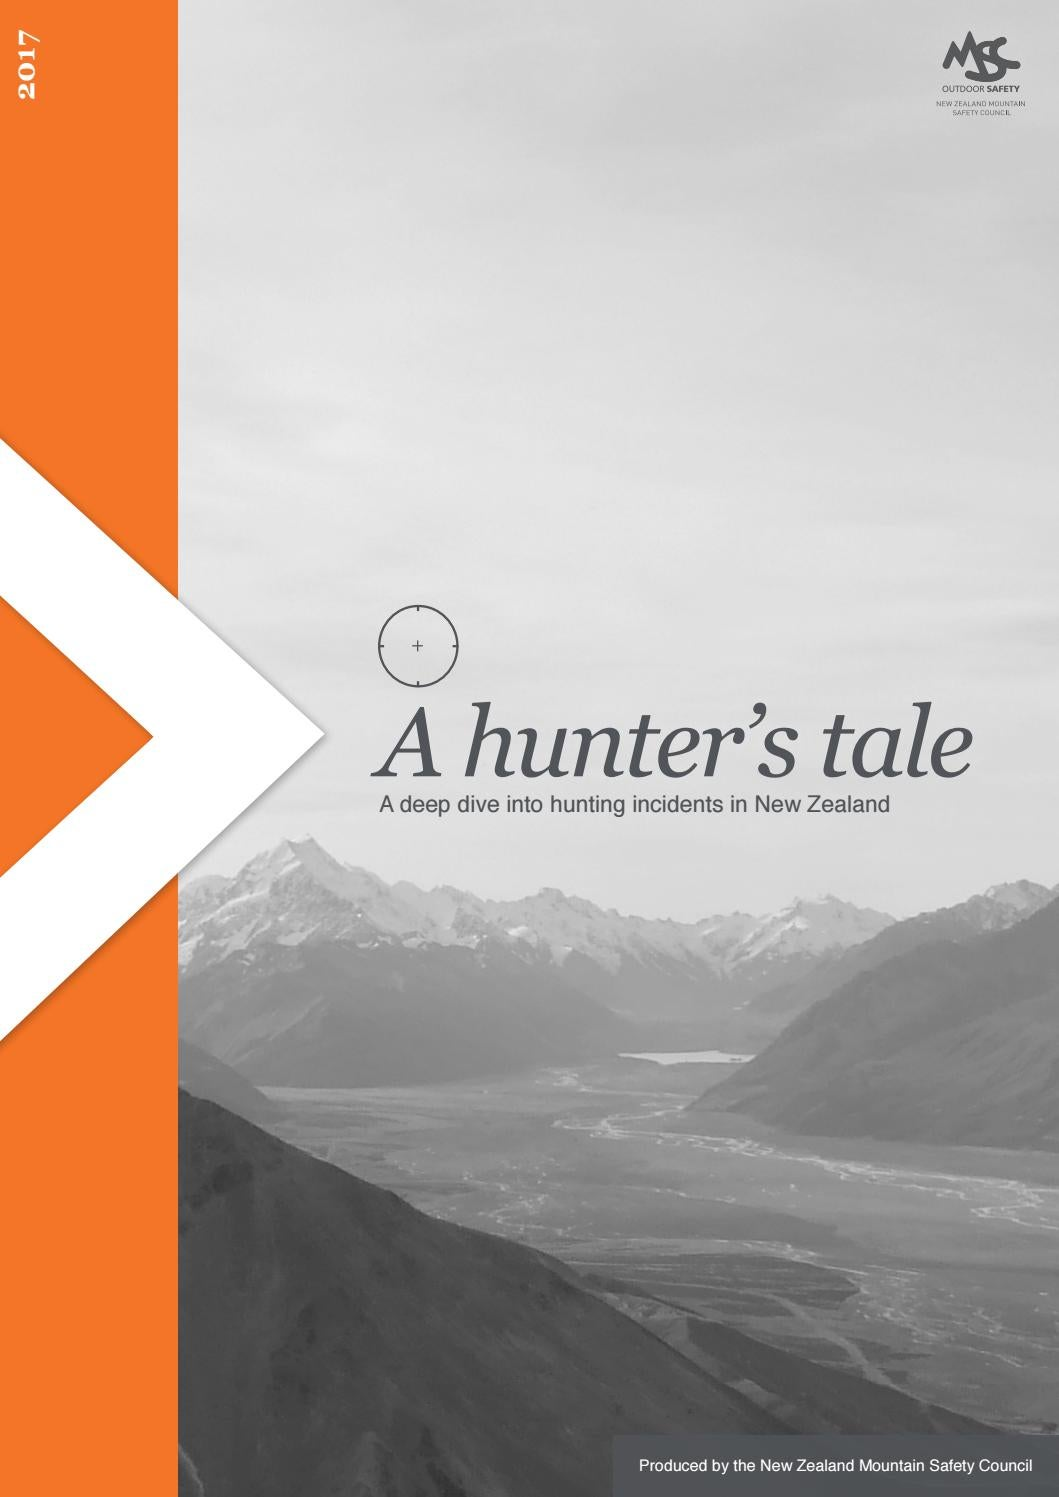 Hunting in the mountains as an option for active recreation